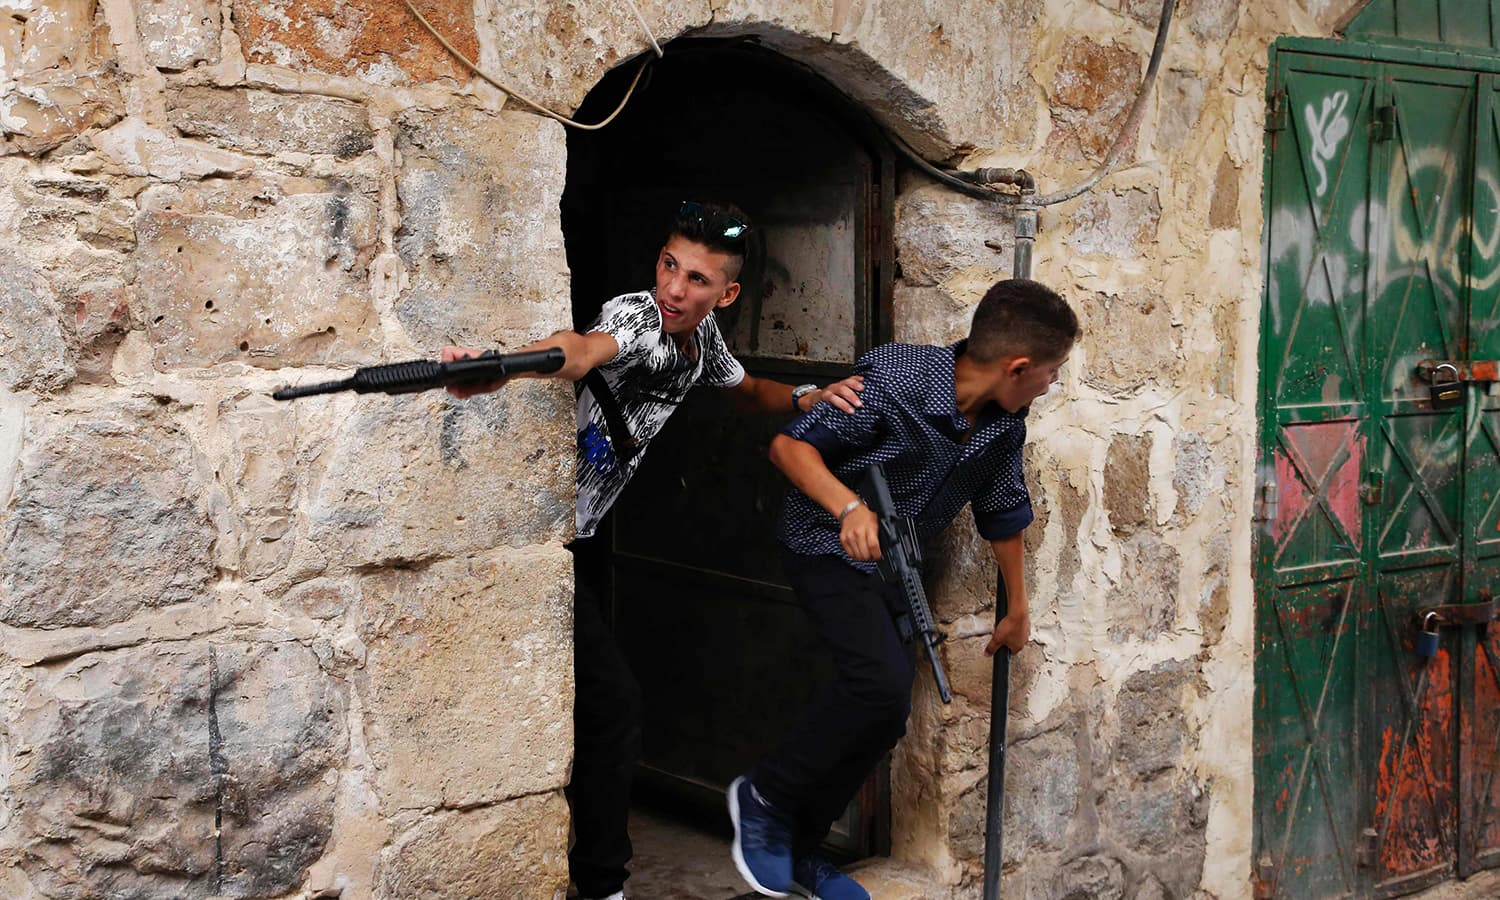 Palestinian children play with toy guns in the West Bank town of Hebron. ─ AFP